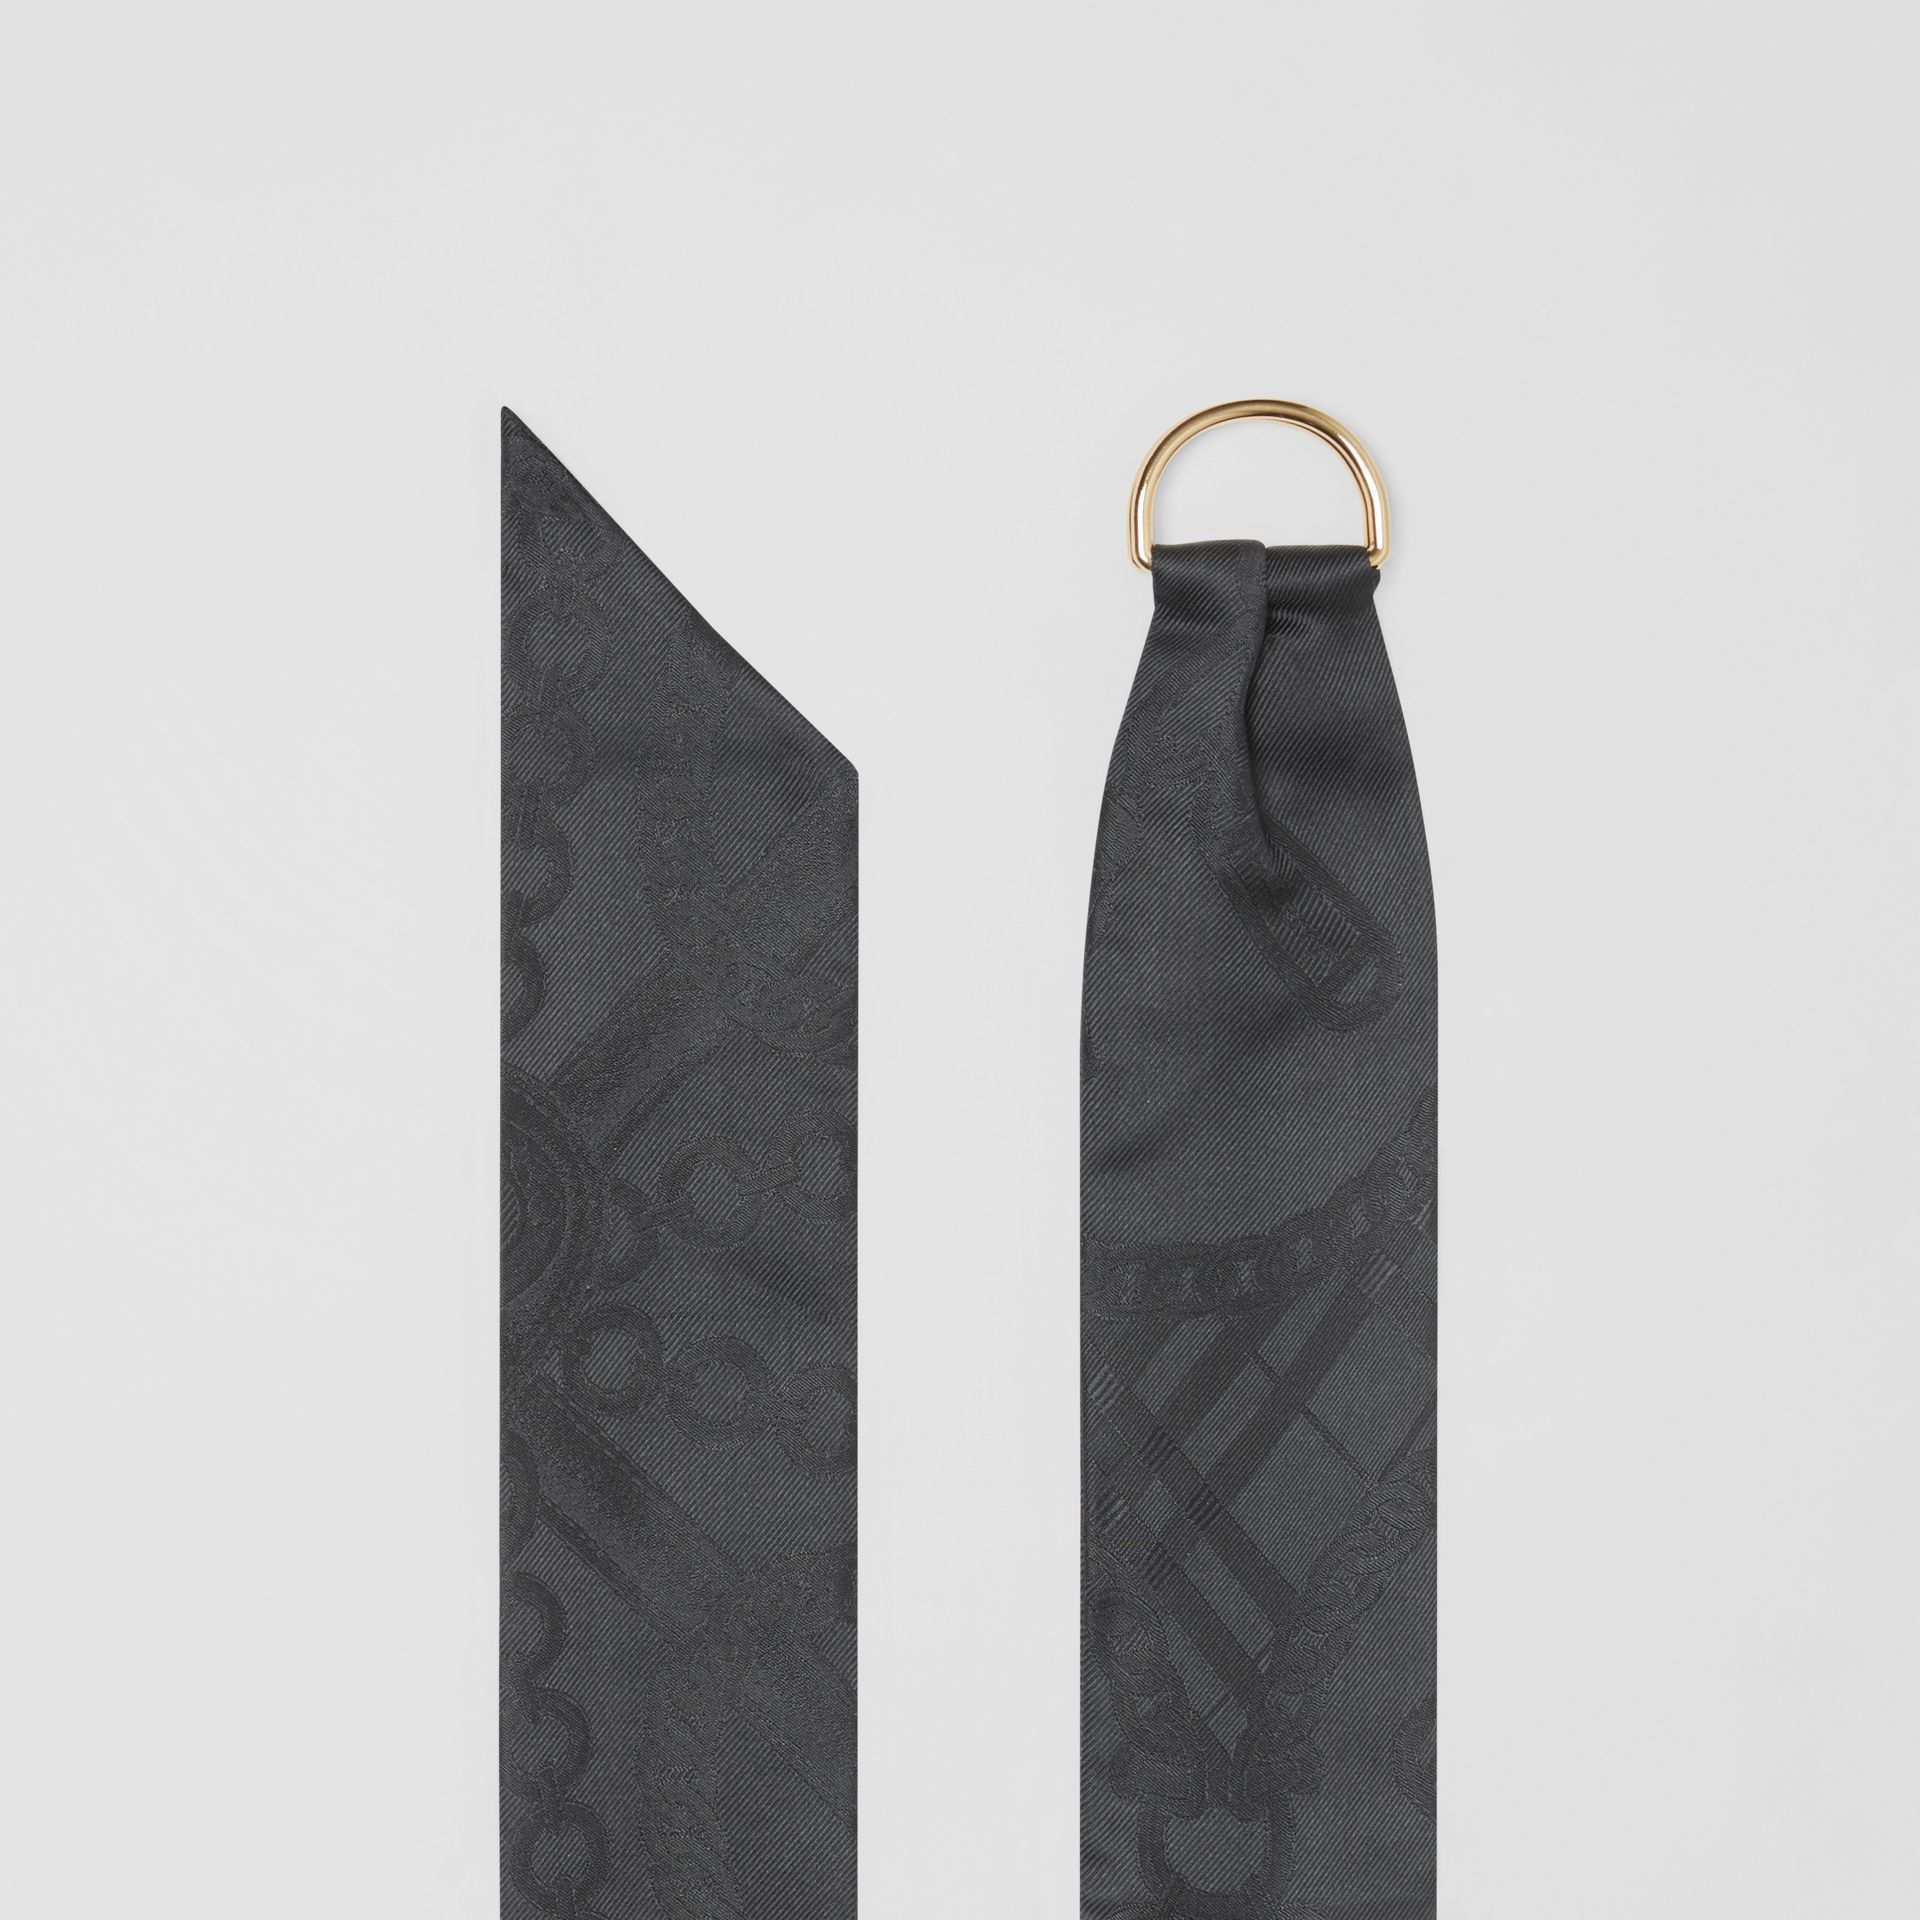 D-ring Detail Chain Silk Jacquard Skinny Scarf in Black | Burberry - gallery image 4